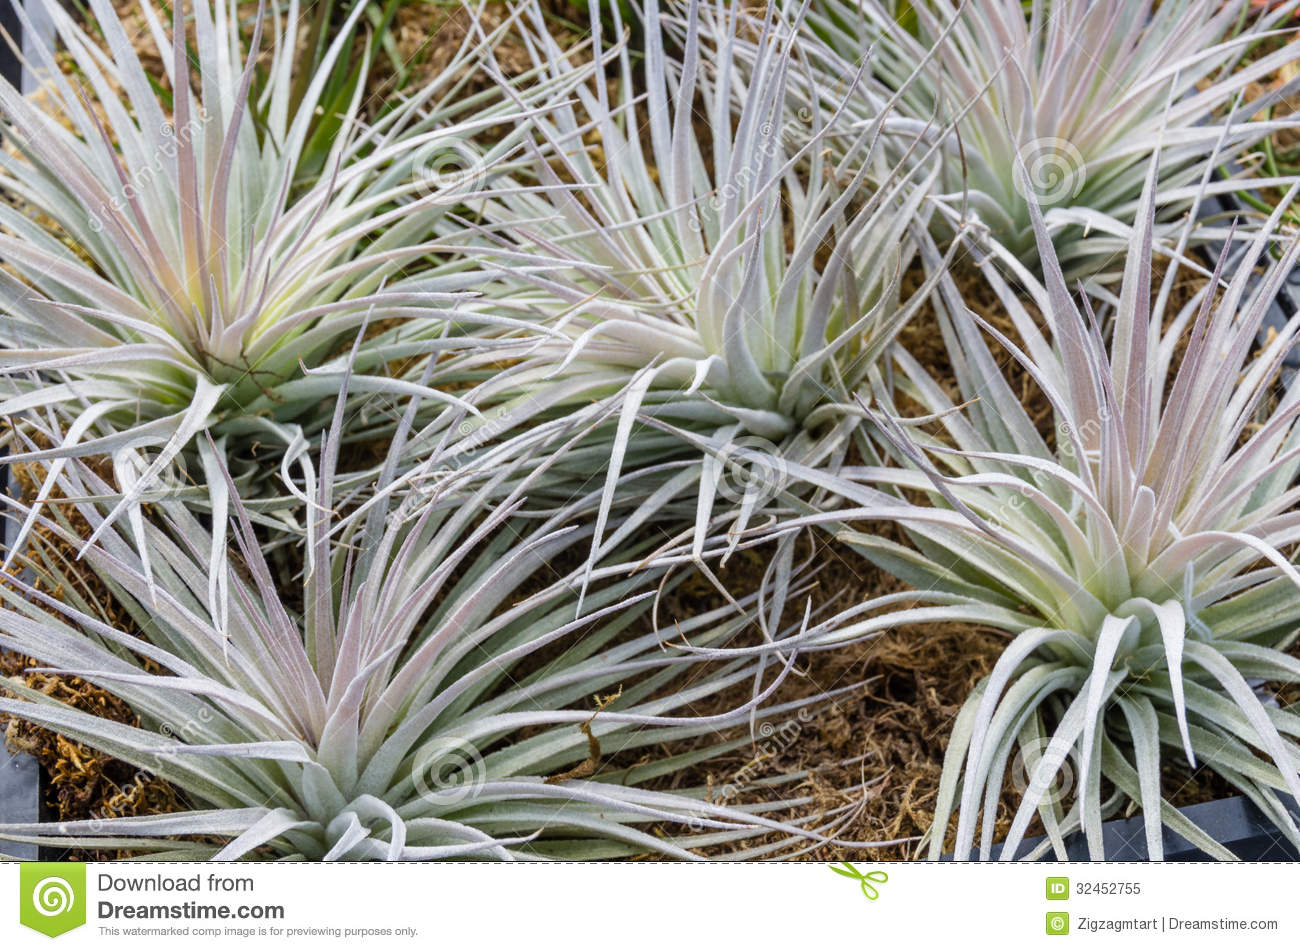 Tillandsia Plants For Sale At The Nursery Stock Image